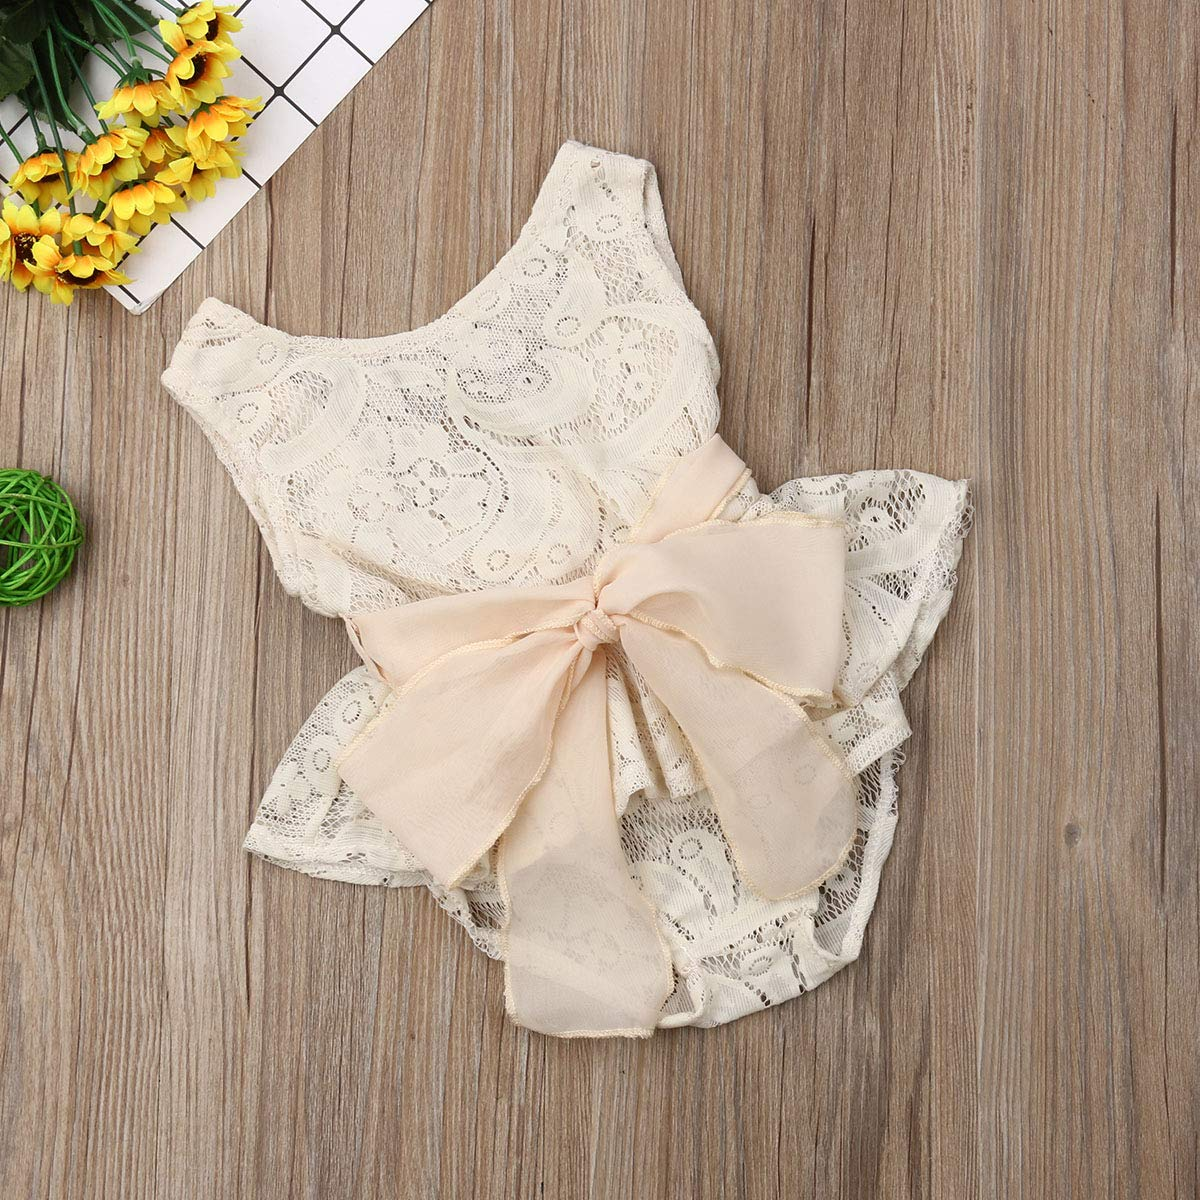 Baby Girls Bodysuits Blue Lace Romper Multiple Styles for All Occasions